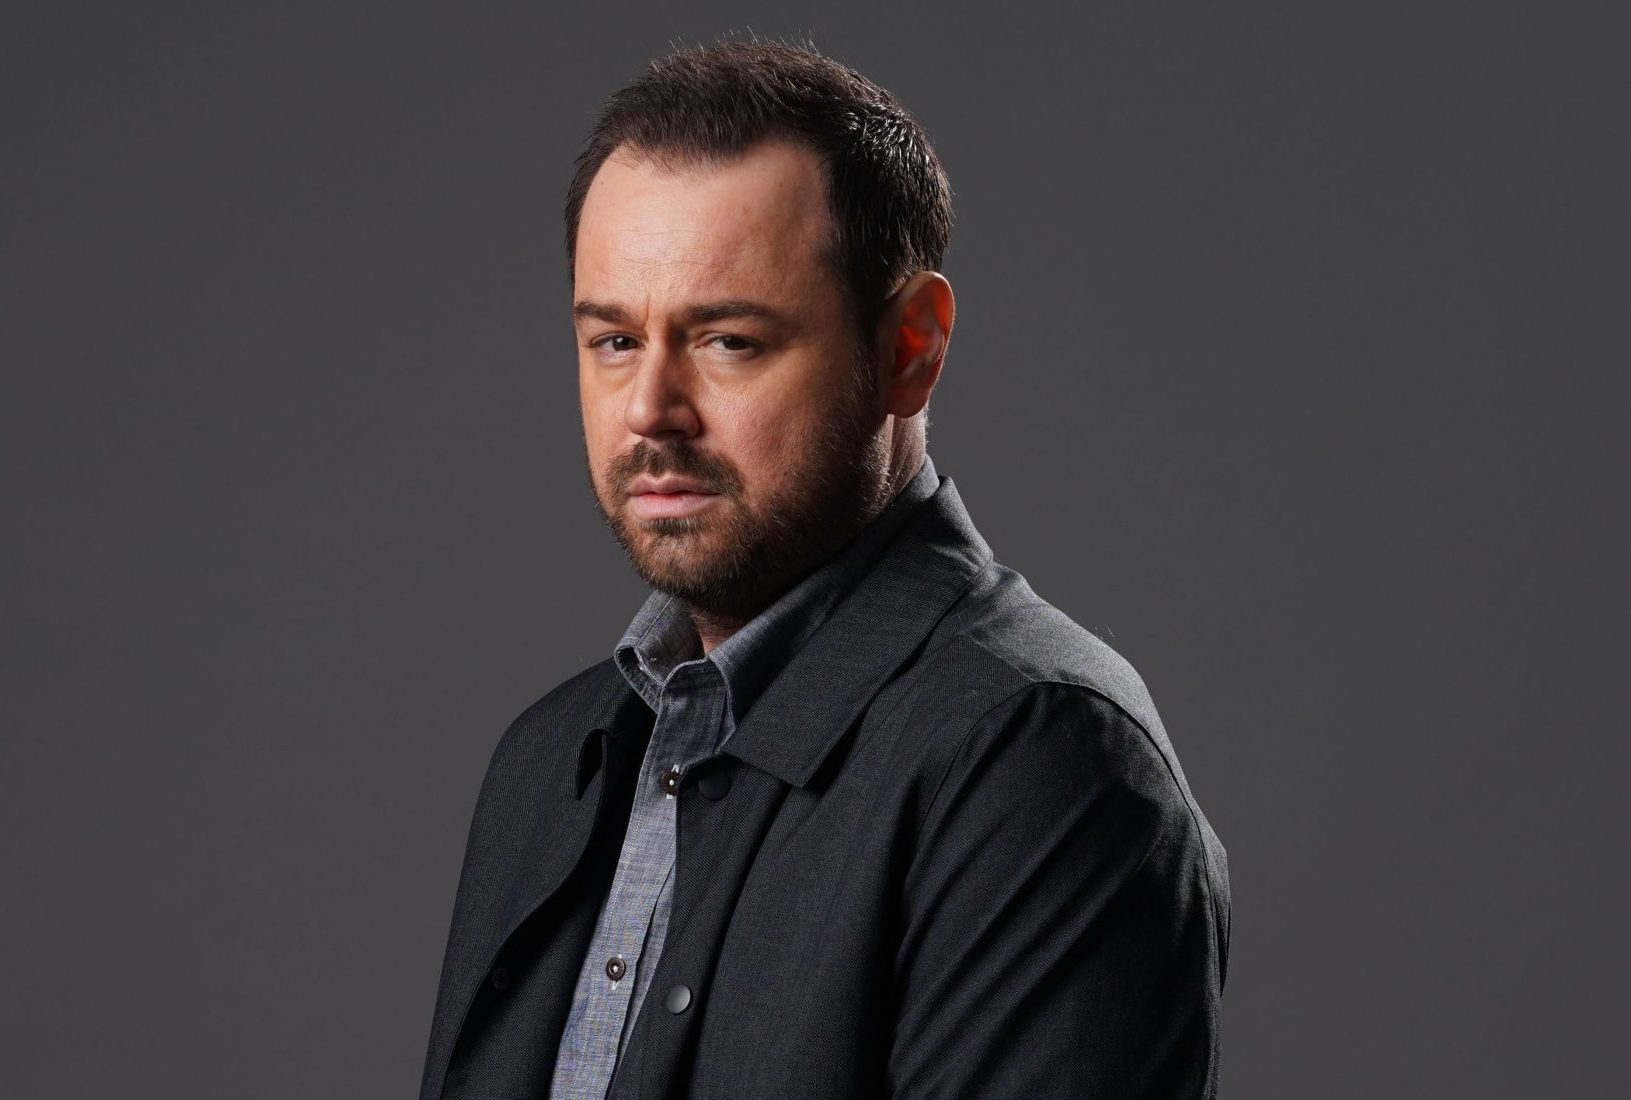 WARNING: Embargoed for publication until 00:00:01 on 22/05/2018 - Programme Name: EastEnders - Portraits 2018 - TX: n/a - Episode: EastEnders - Mick Carter (No. n/a) - Picture Shows: Mick Carter (DANNY DYER) - (C) BBC - Photographer: Kieron McCarron